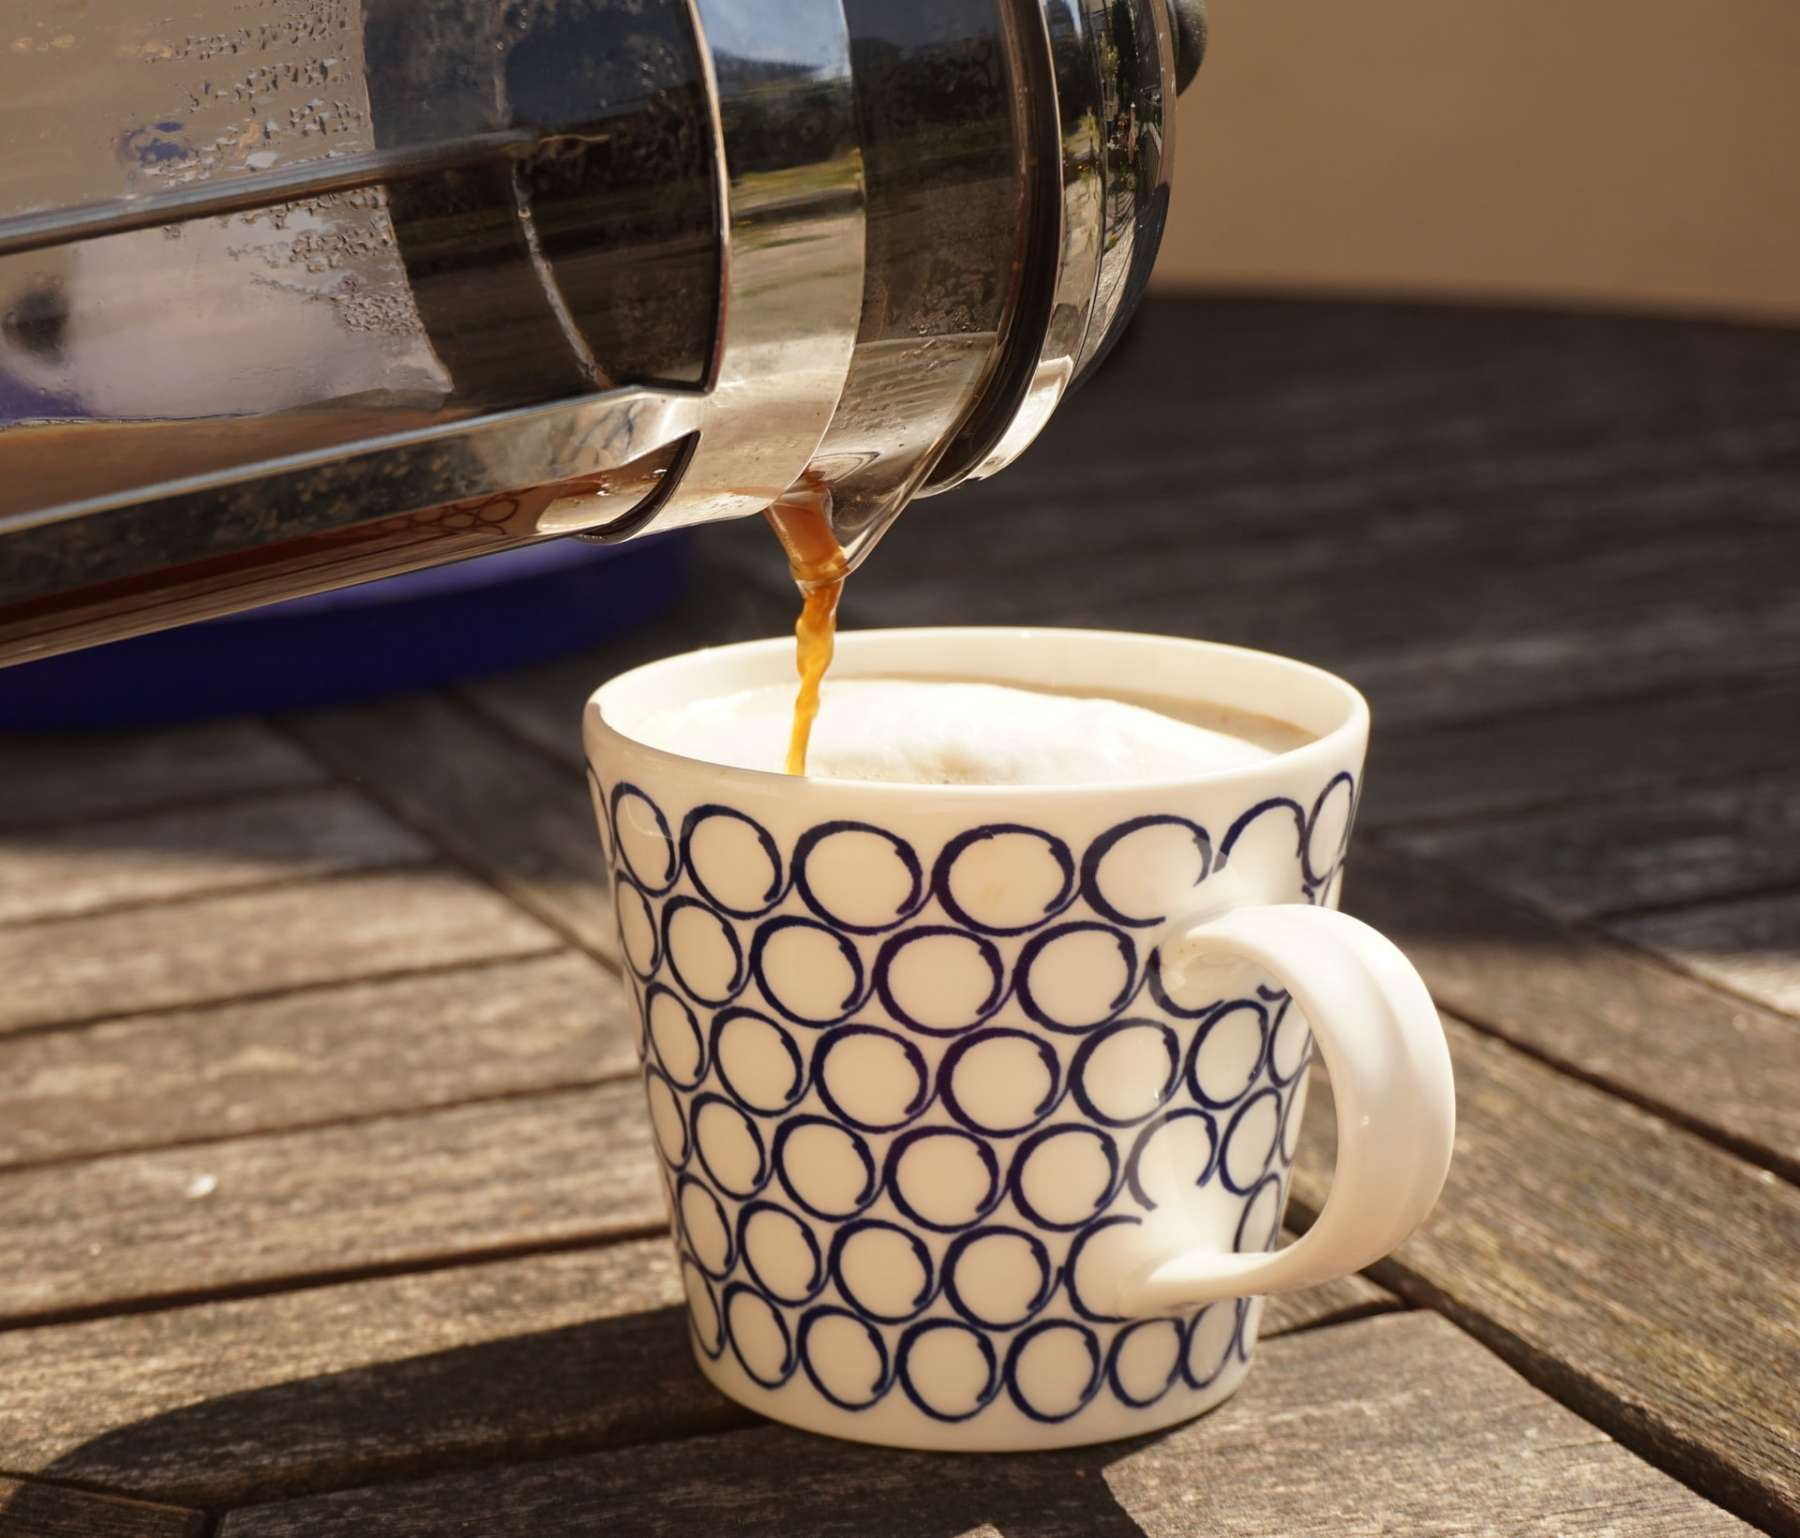 Pouring coffee from a french press